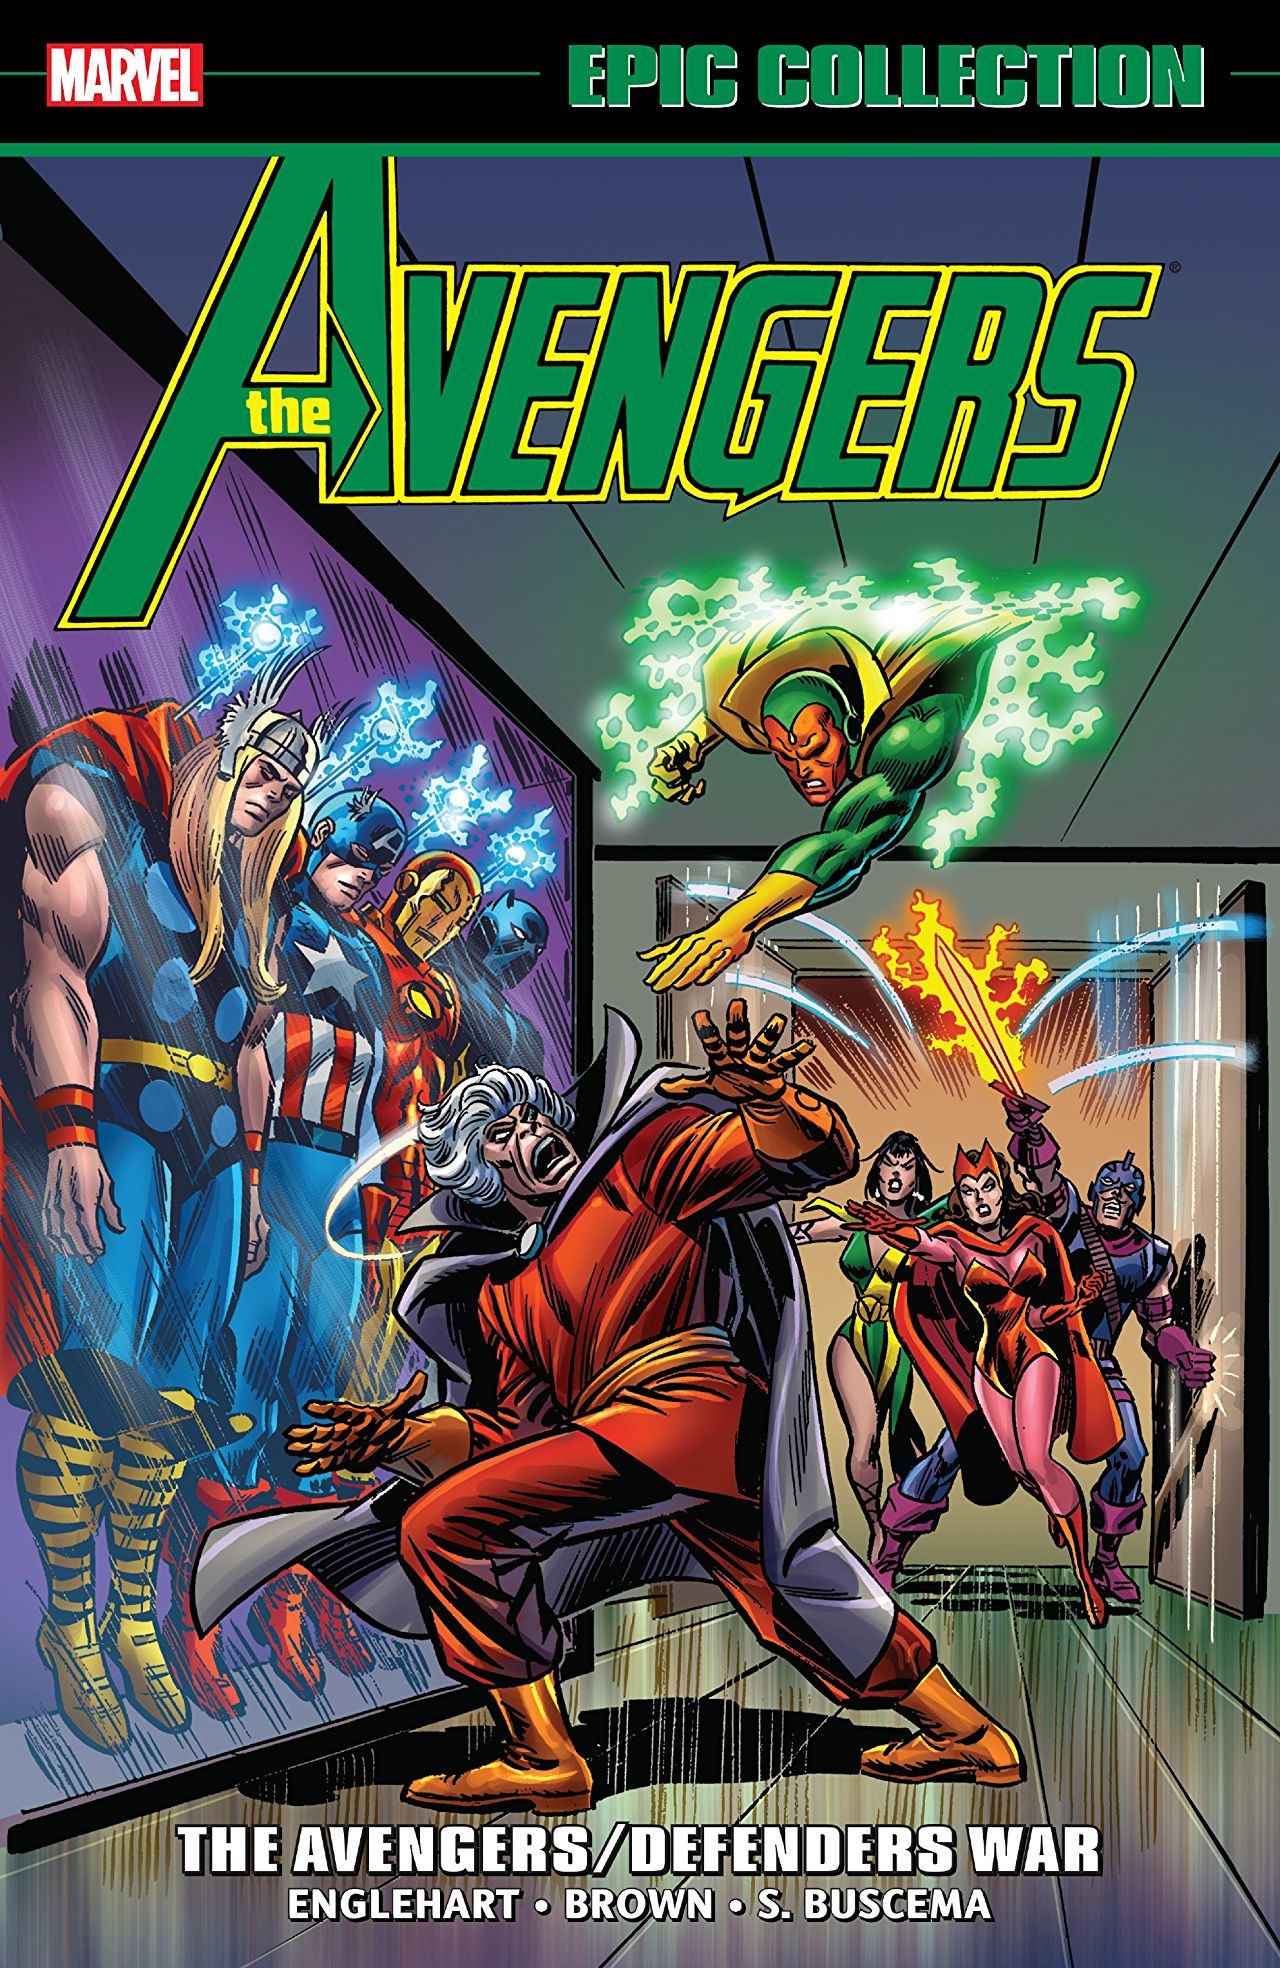 Epic Collection: Avengers Vol 1 7